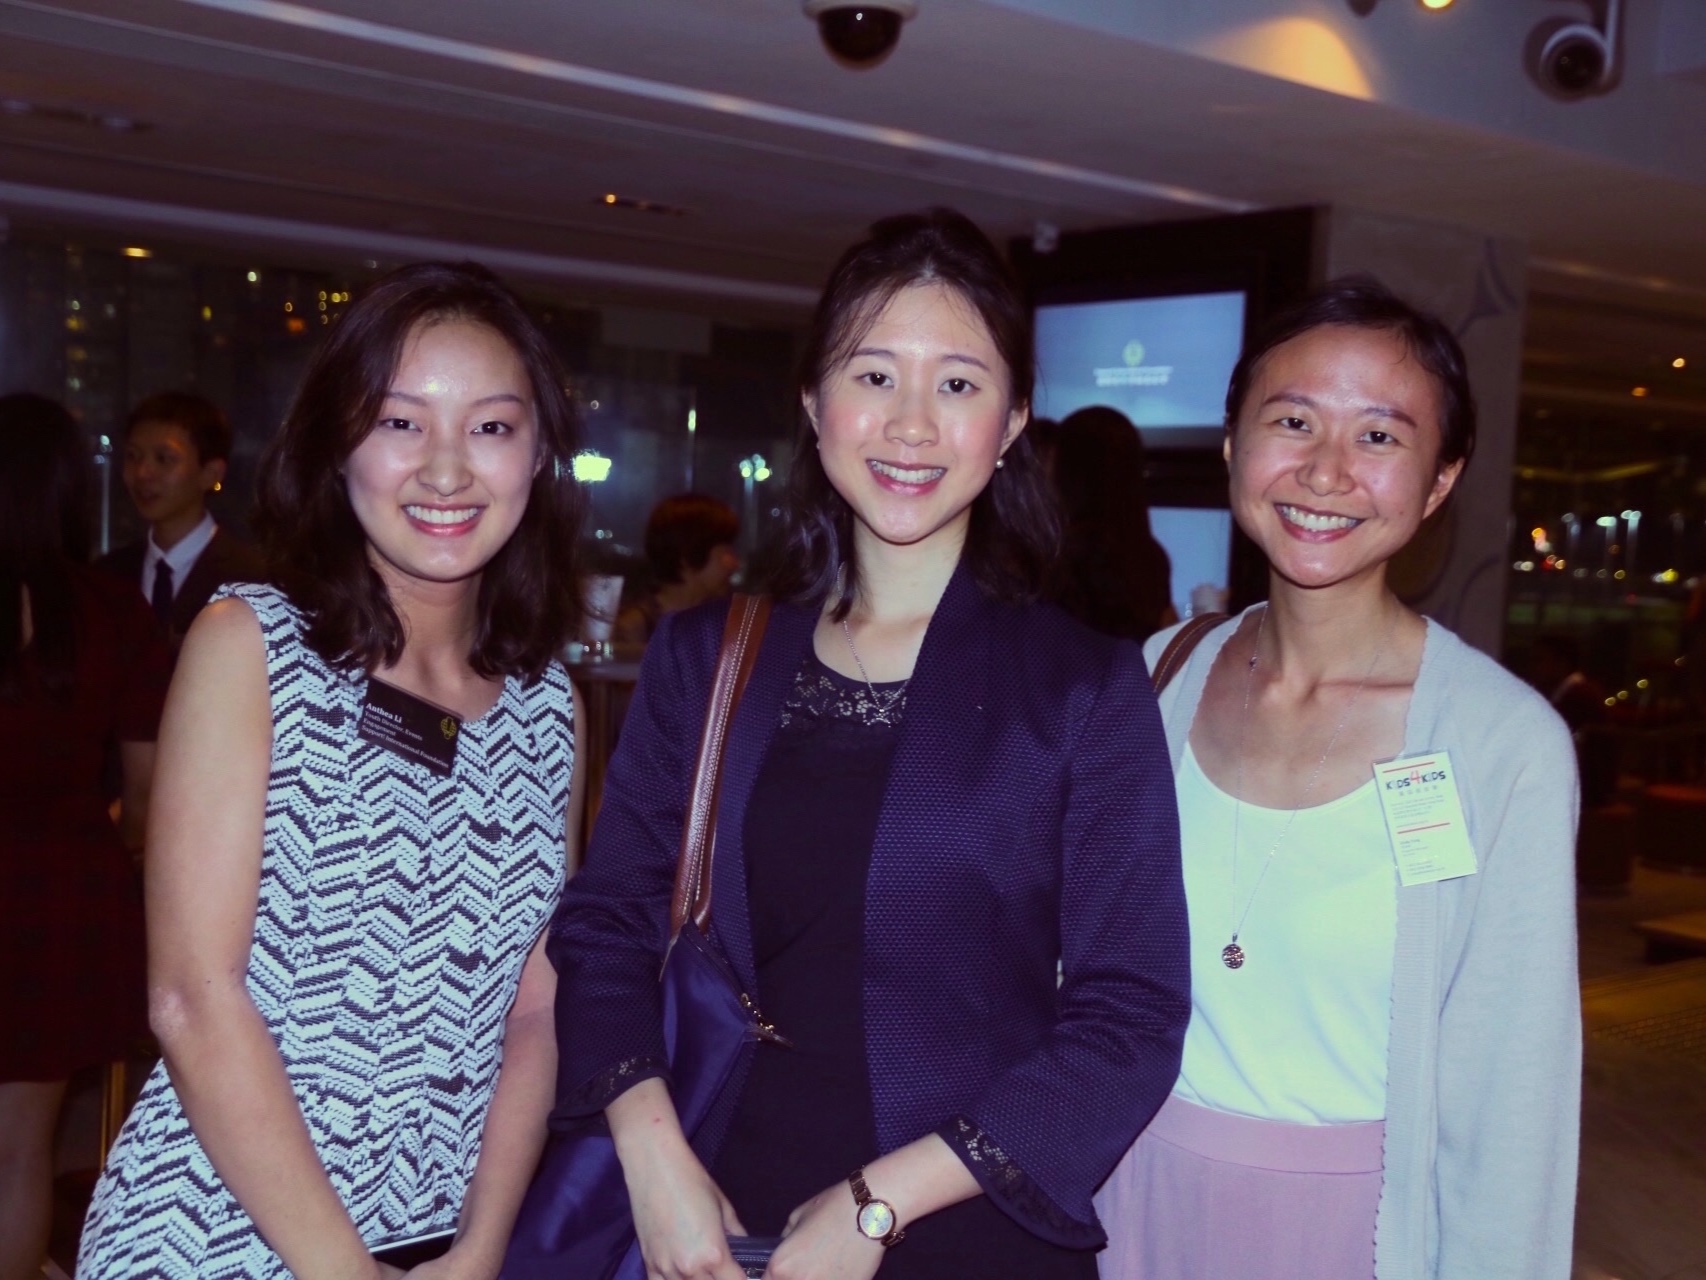 Youth Director, Events Engagement Anthea Li with Elizabeth Fung, Political Assistant to the Secretary for Commerce and Economic Development; and Cindy Fung, Program Manager at Kids4Kids